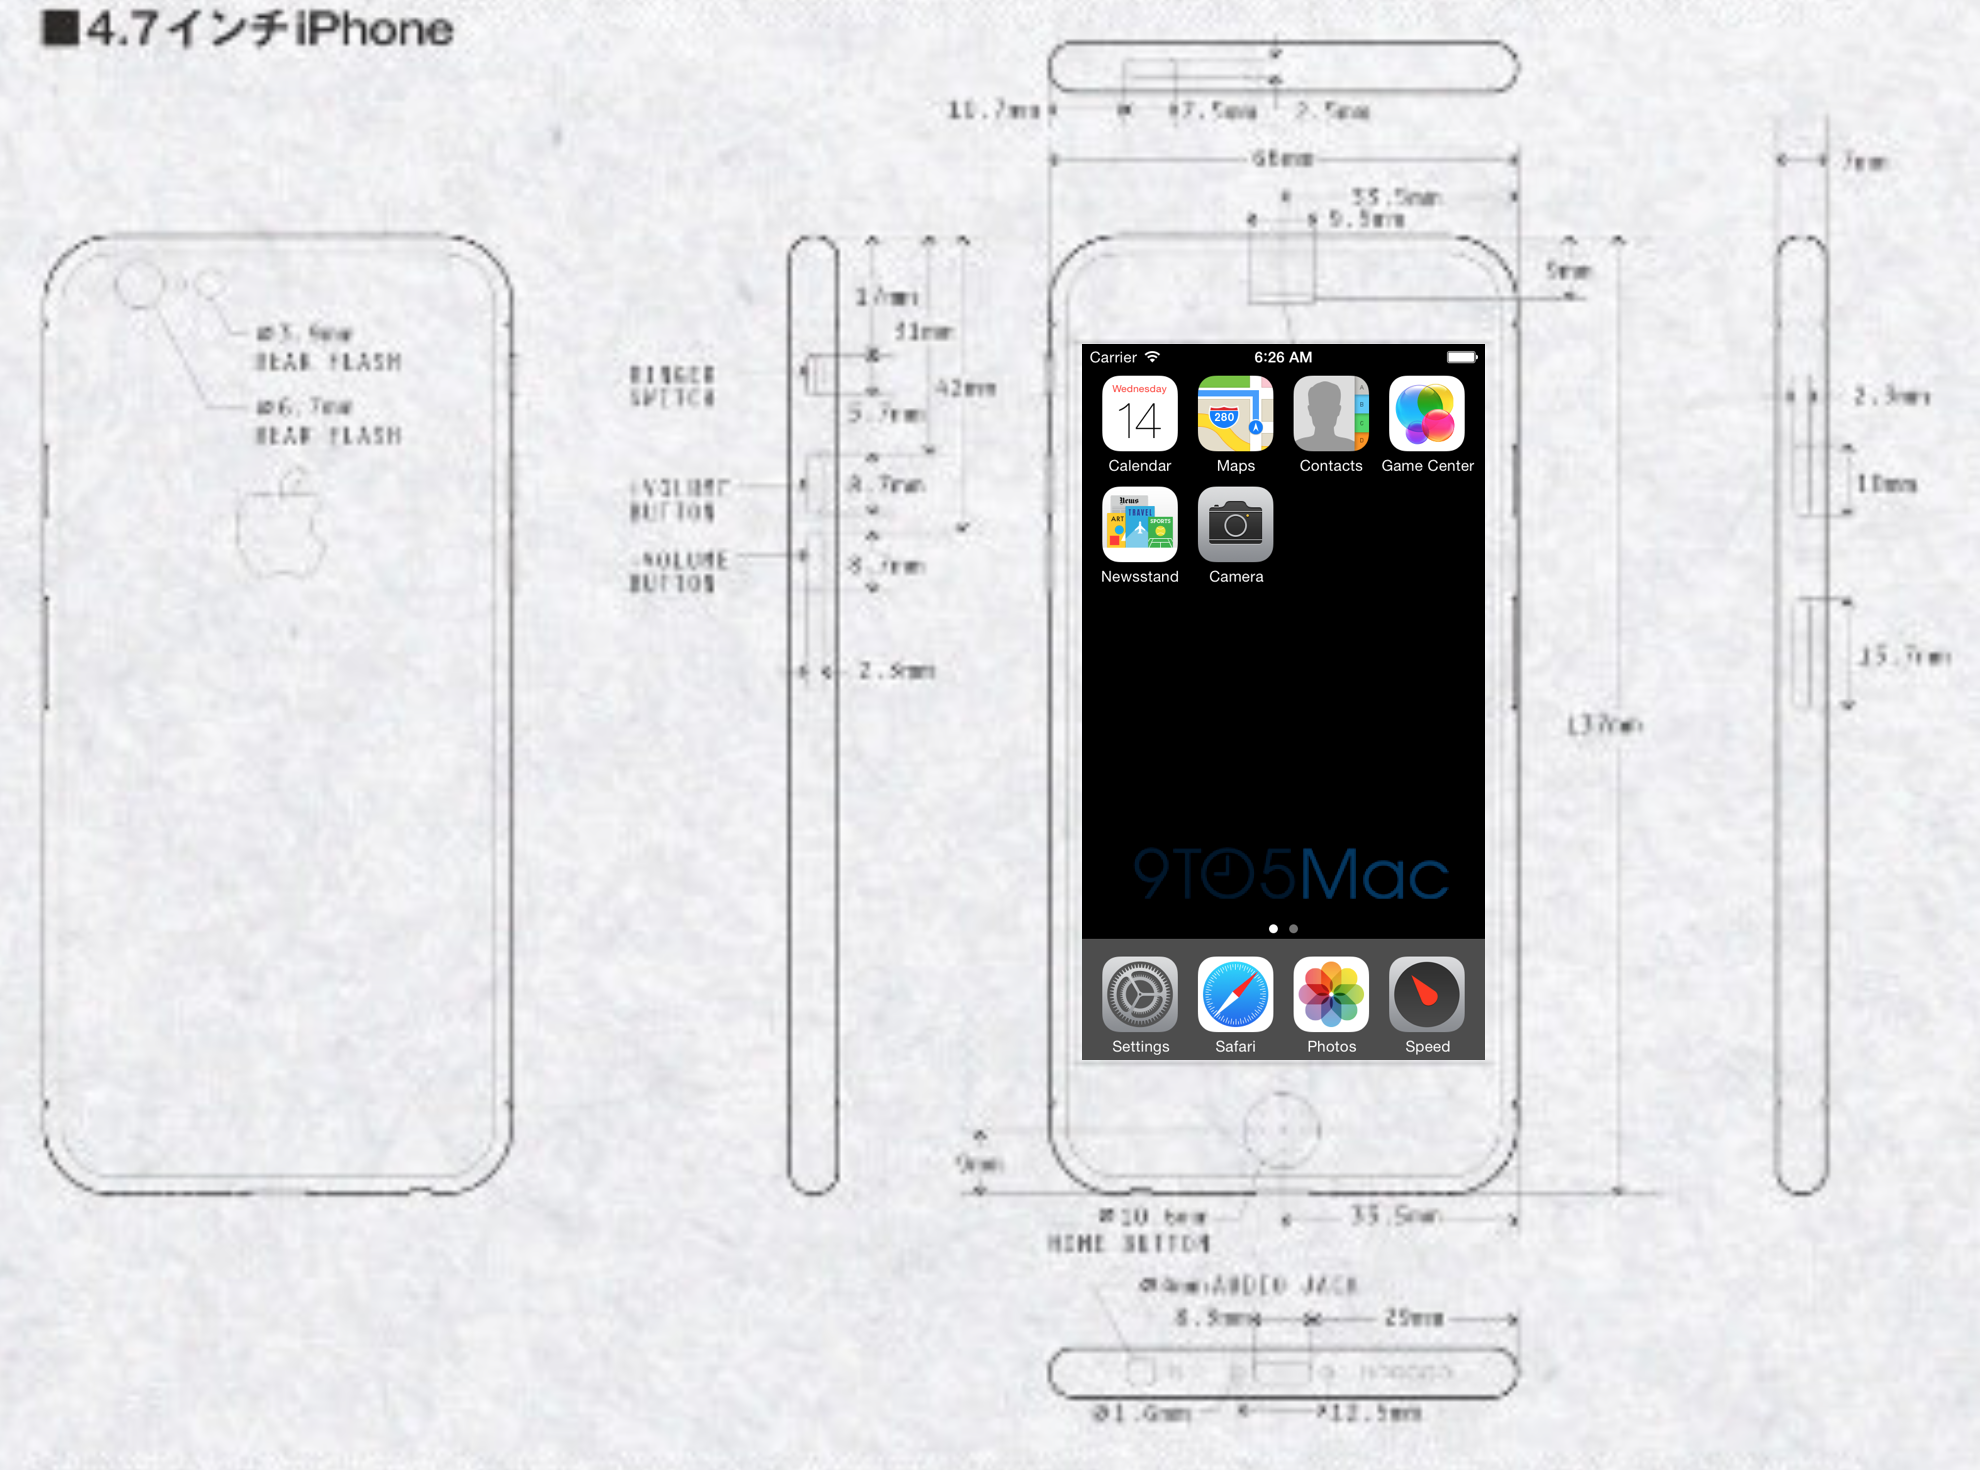 iphone 6 with larger sharper 1704 x 960 resolution screen in testing 9to5mac